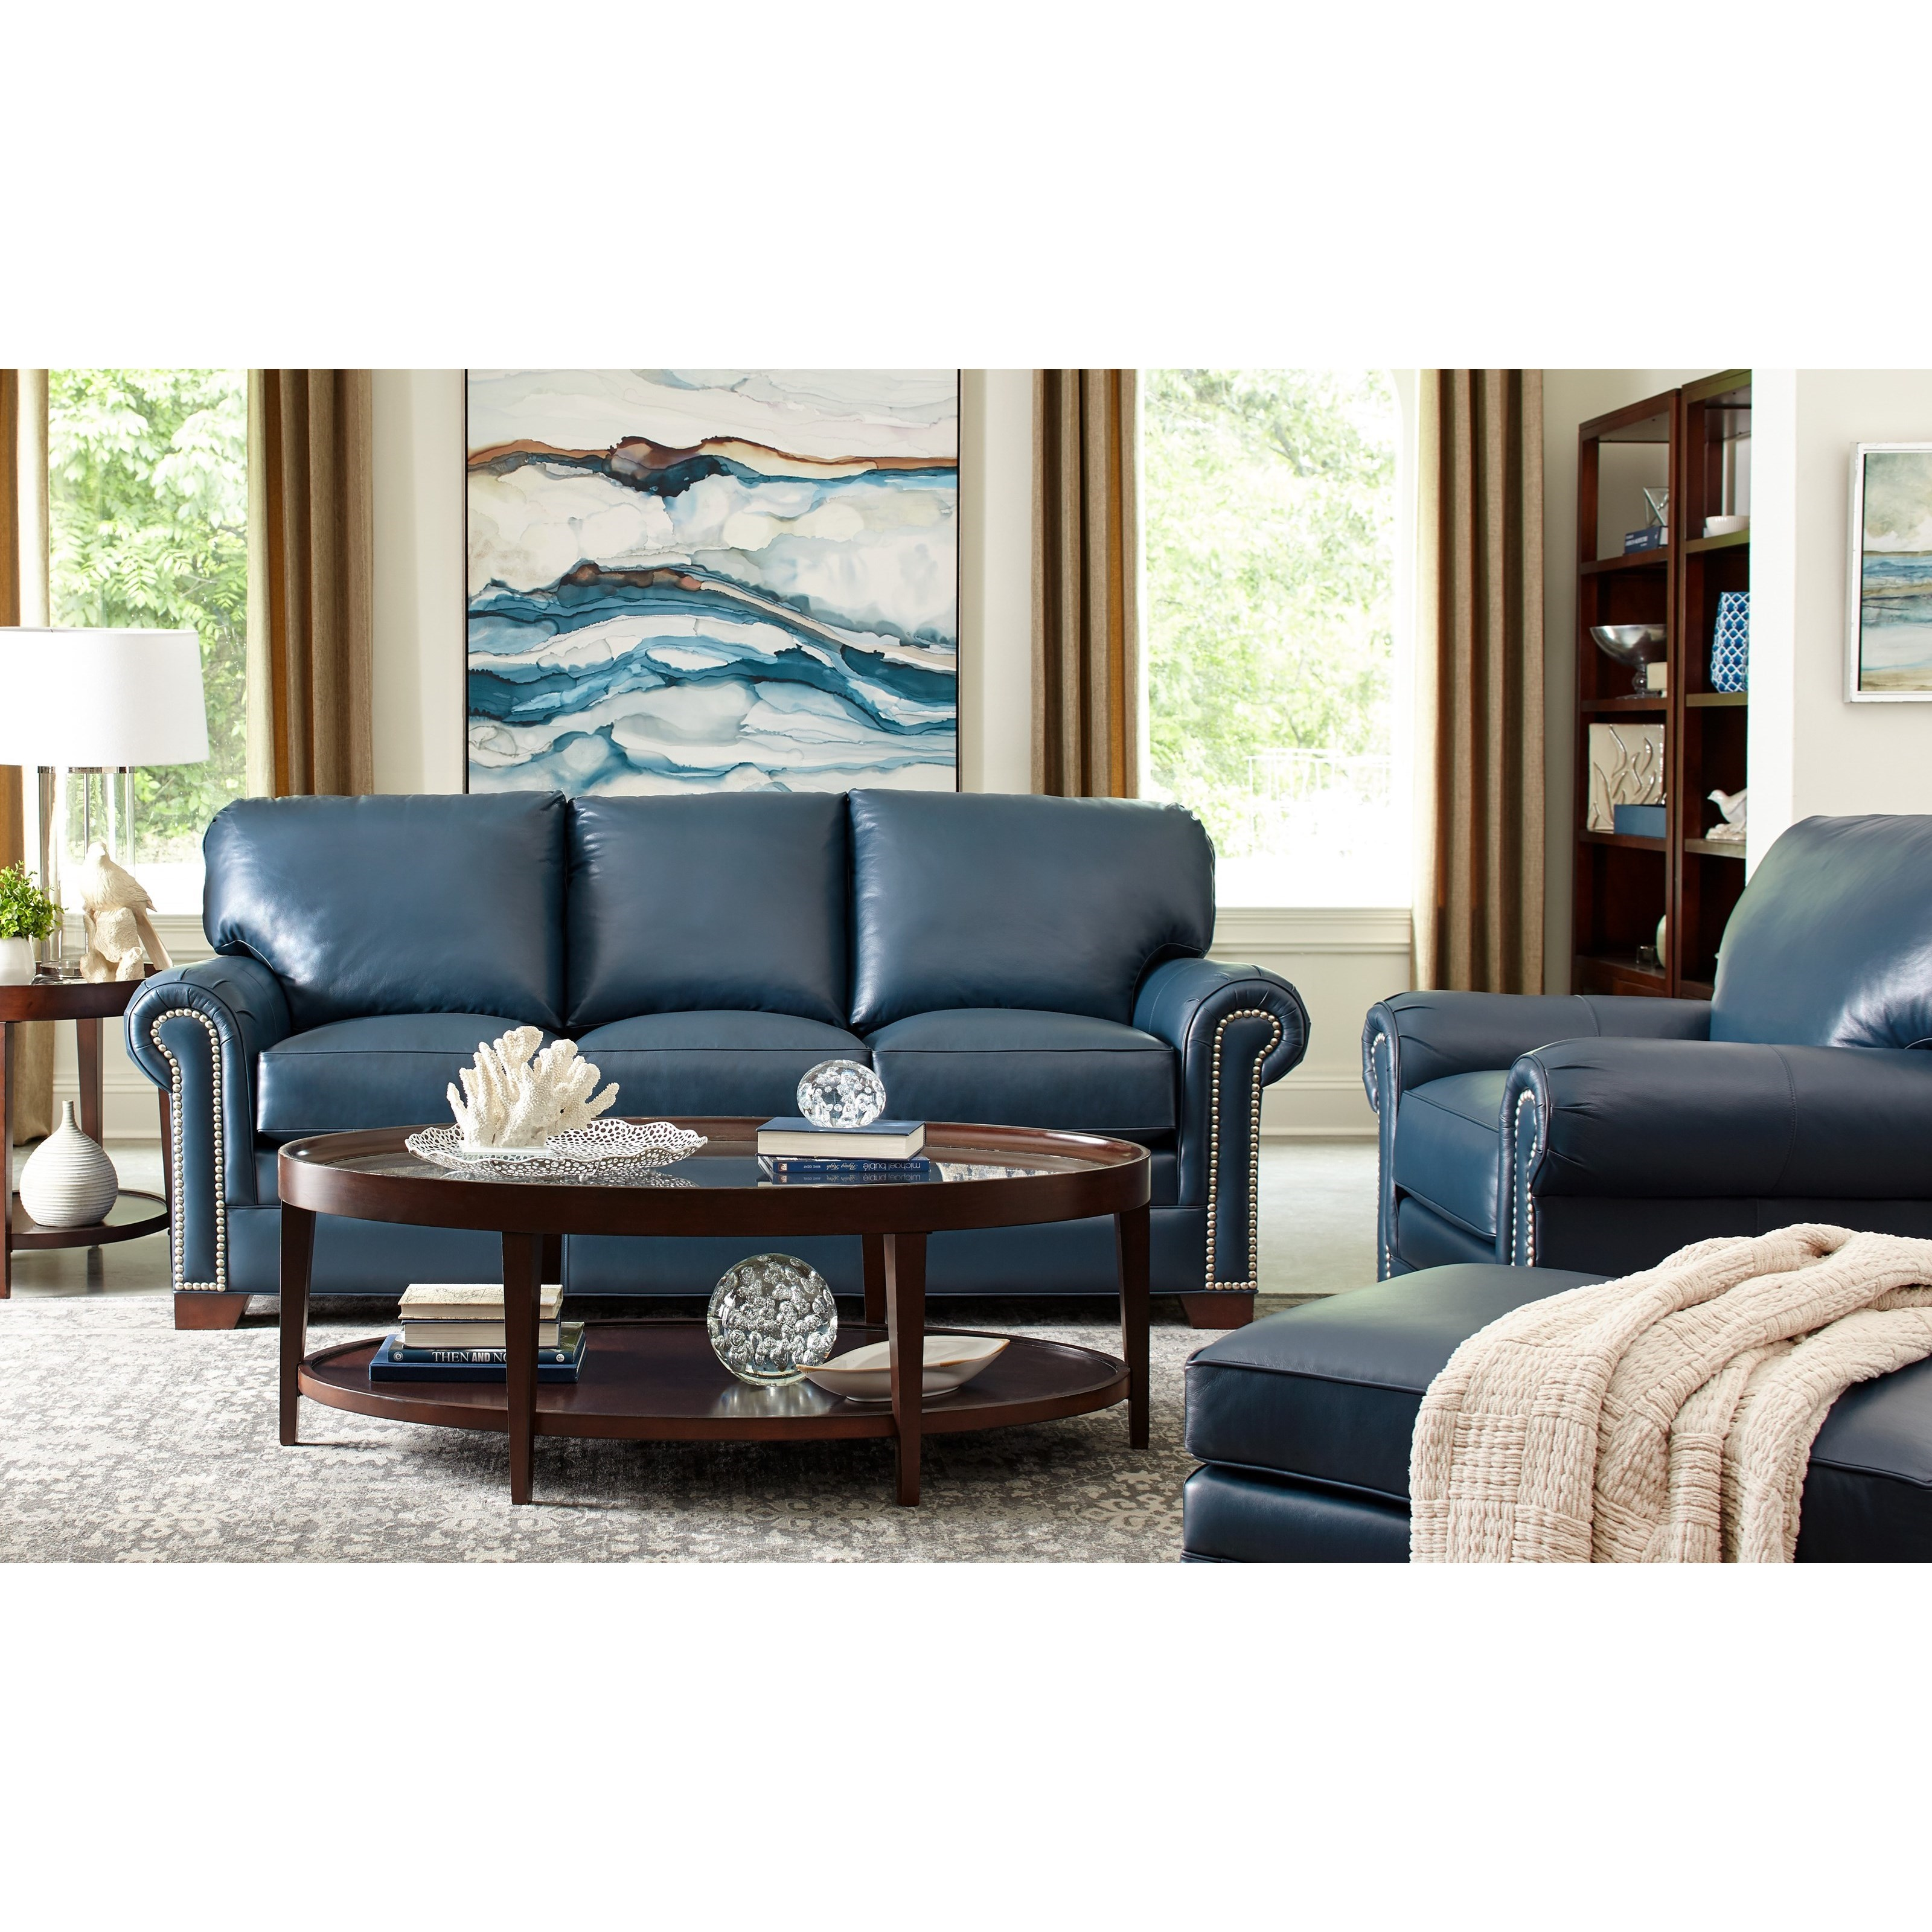 L756550 Living Room Group by Craftmaster at Esprit Decor Home Furnishings